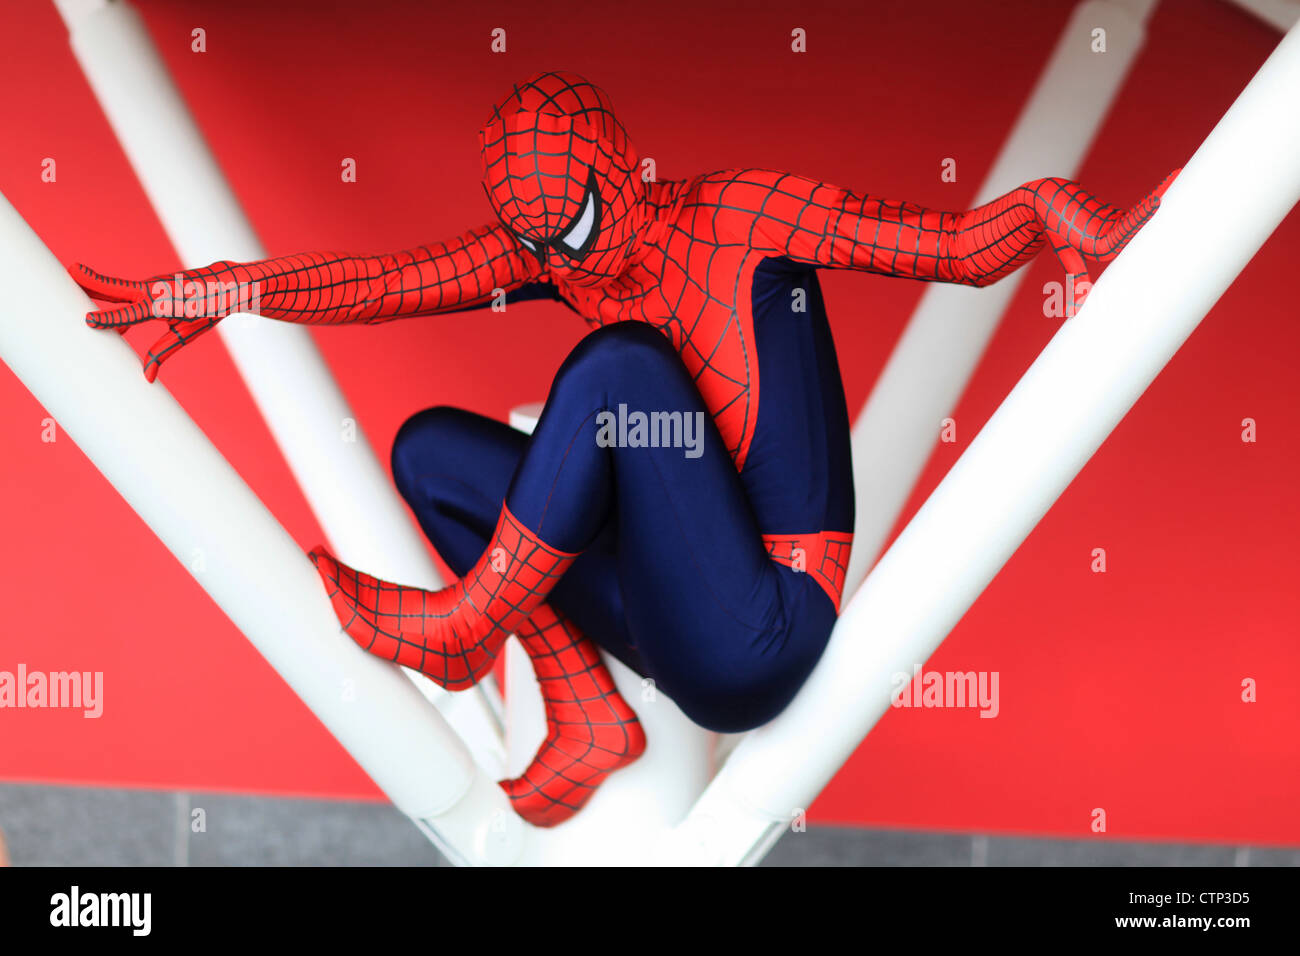 A Cosplay fan in Spiderman outfit - Stock Image